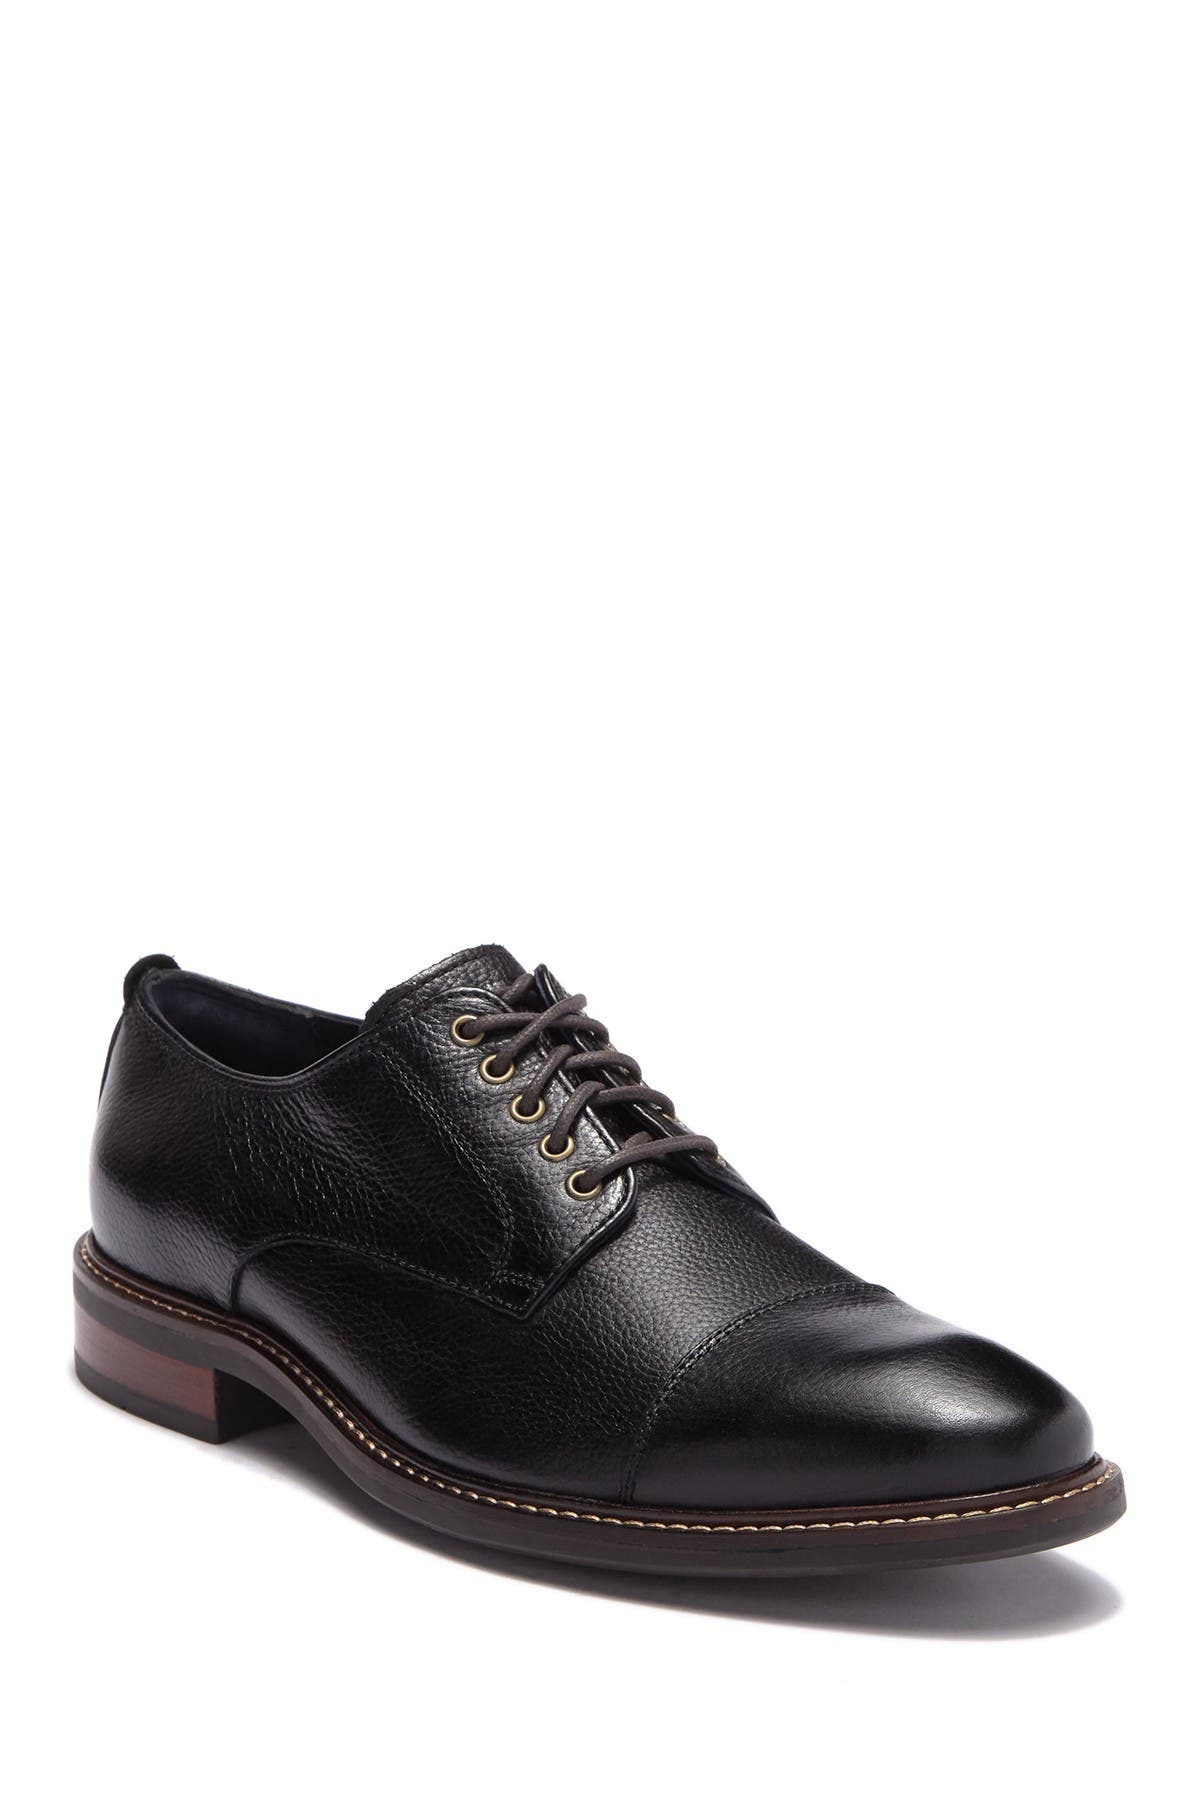 Image of Cole Haan Watson Casual Cap Toe Derby